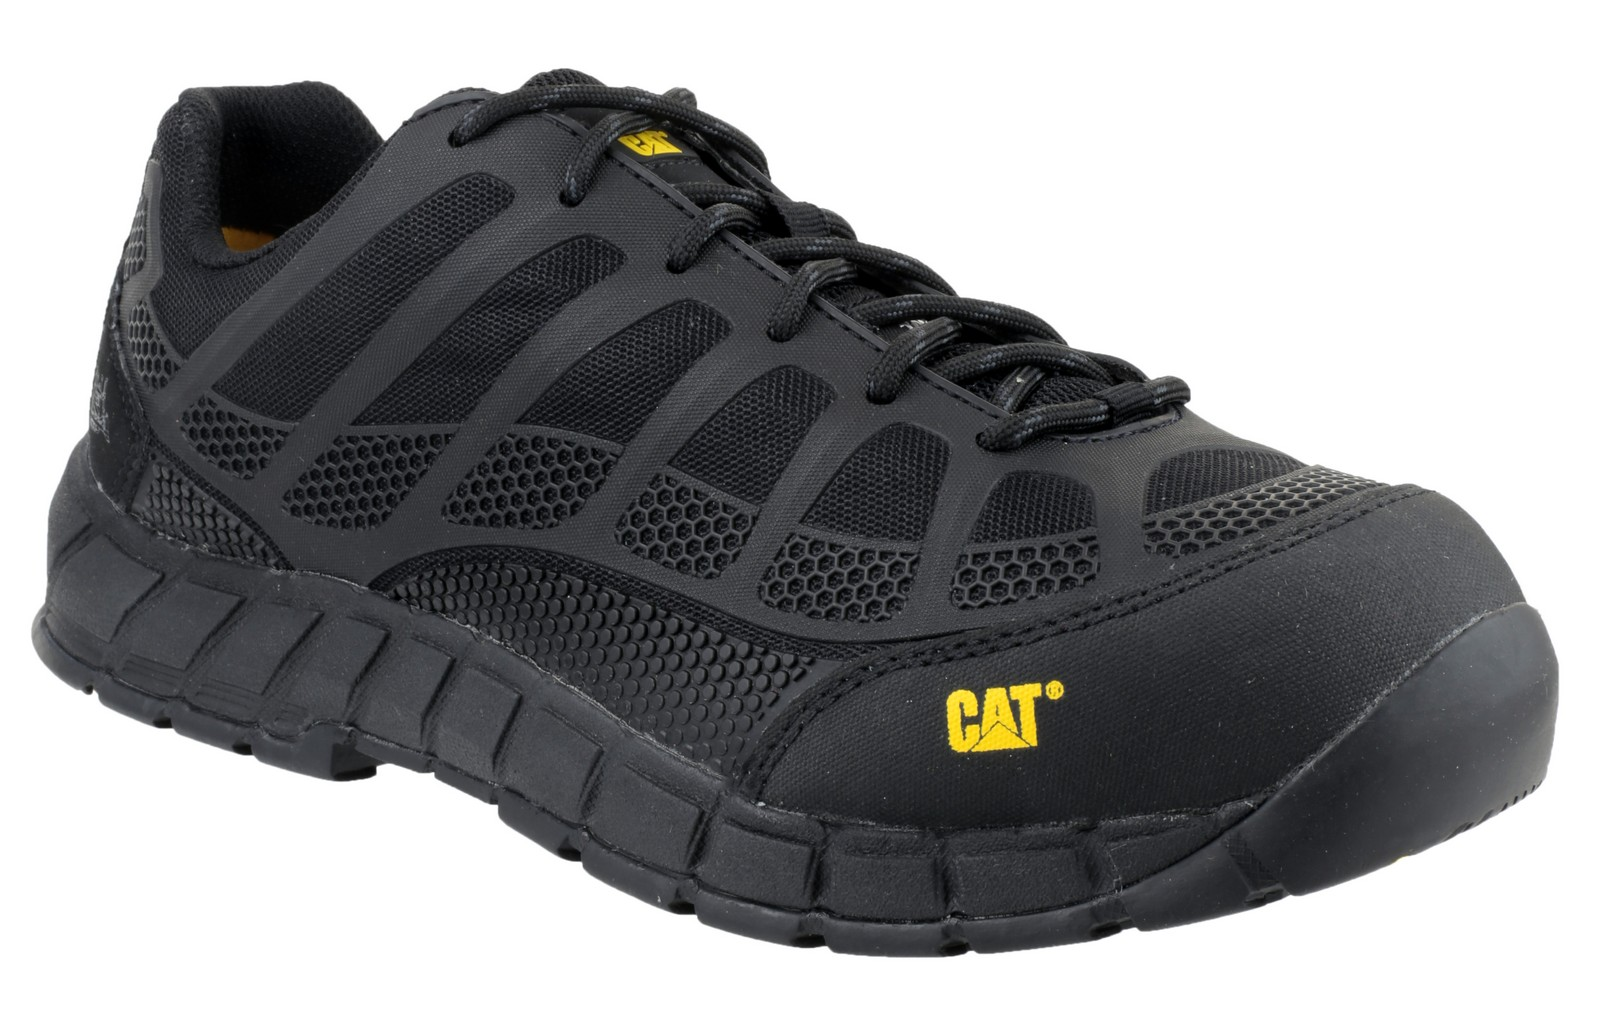 Mens Caterpillar Safety Shoes